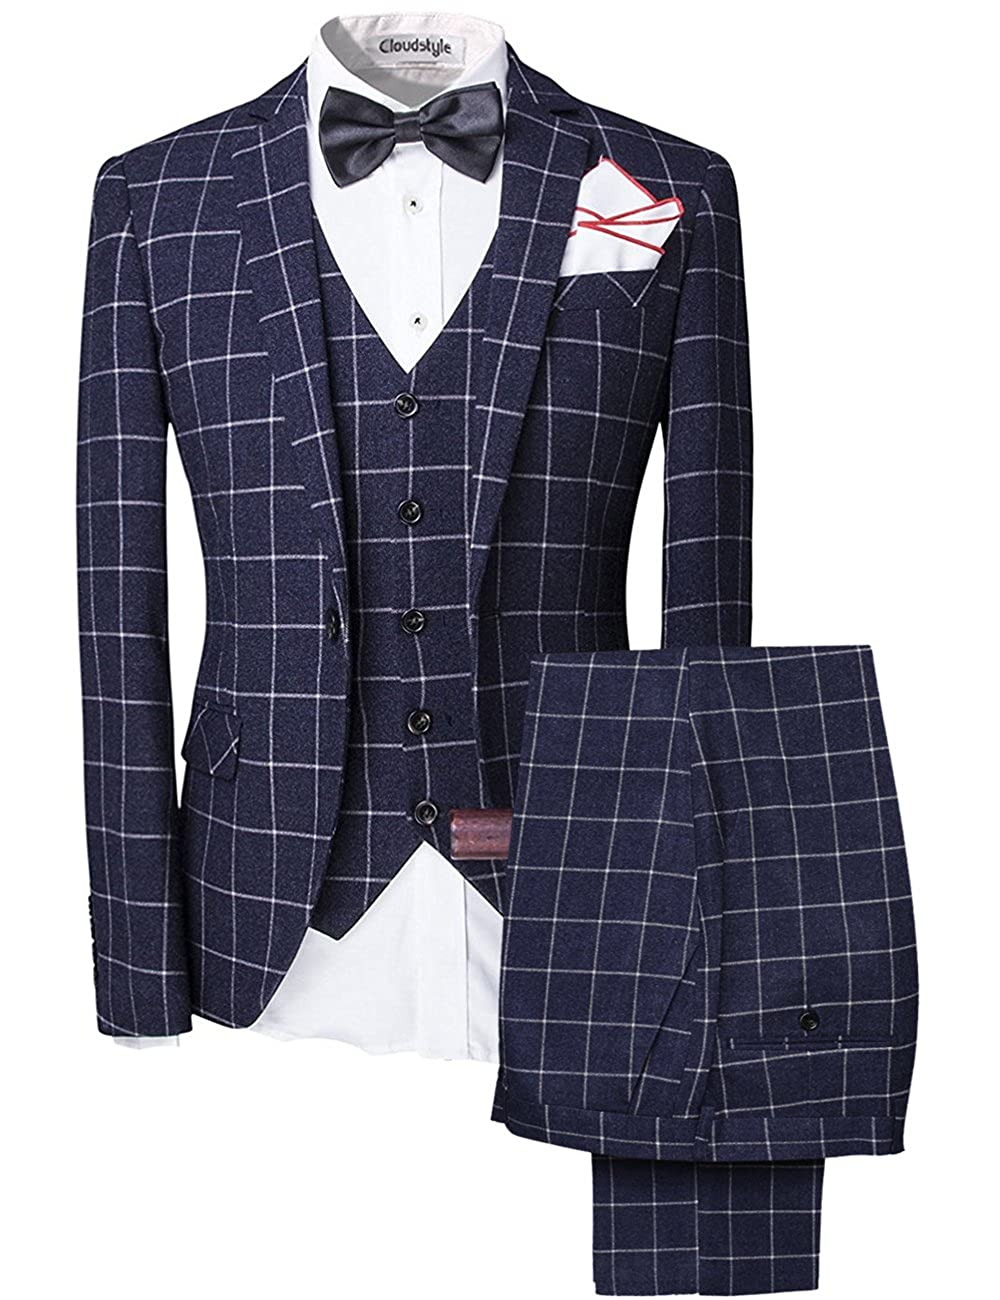 Cloudstyle Men's Vintage 3 Piece Tweed Suits Slim Fit One Button Plaid Wedding Prom Party YD1607